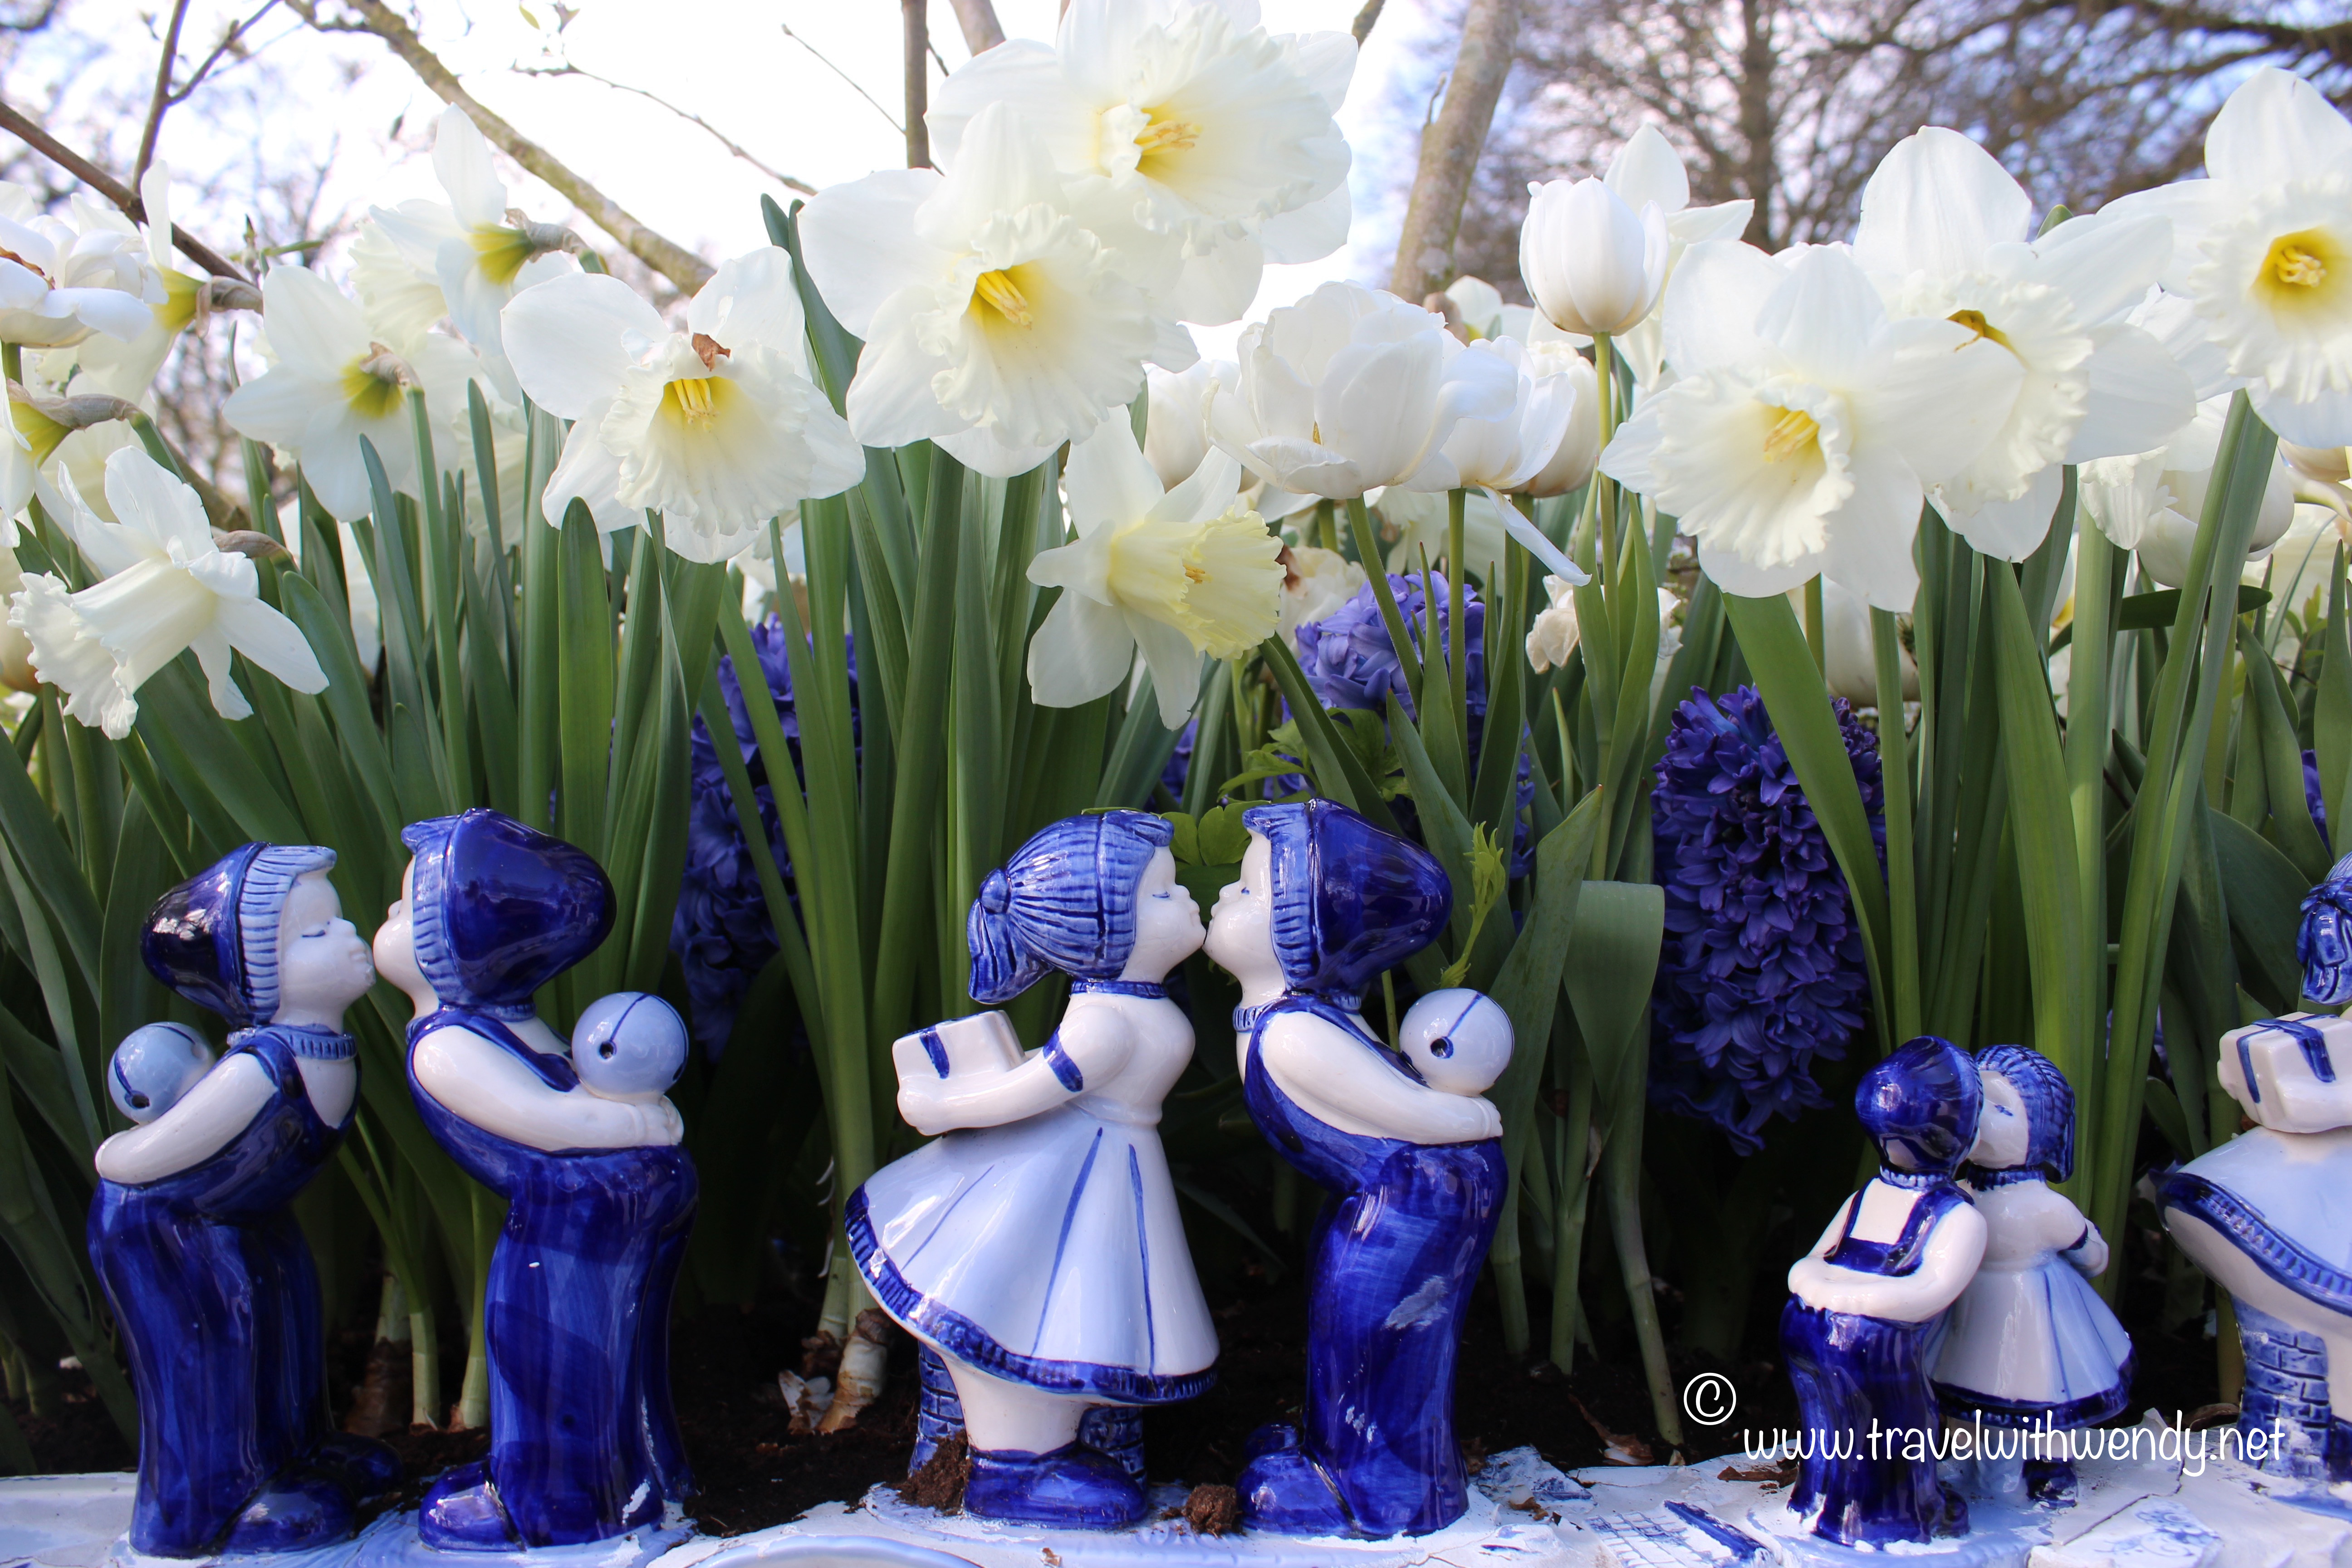 25 Wonderful Delft Tulip Vase 2021 free download delft tulip vase of spring travel in holland travel with wendy intended for tww delft exhibit gardens